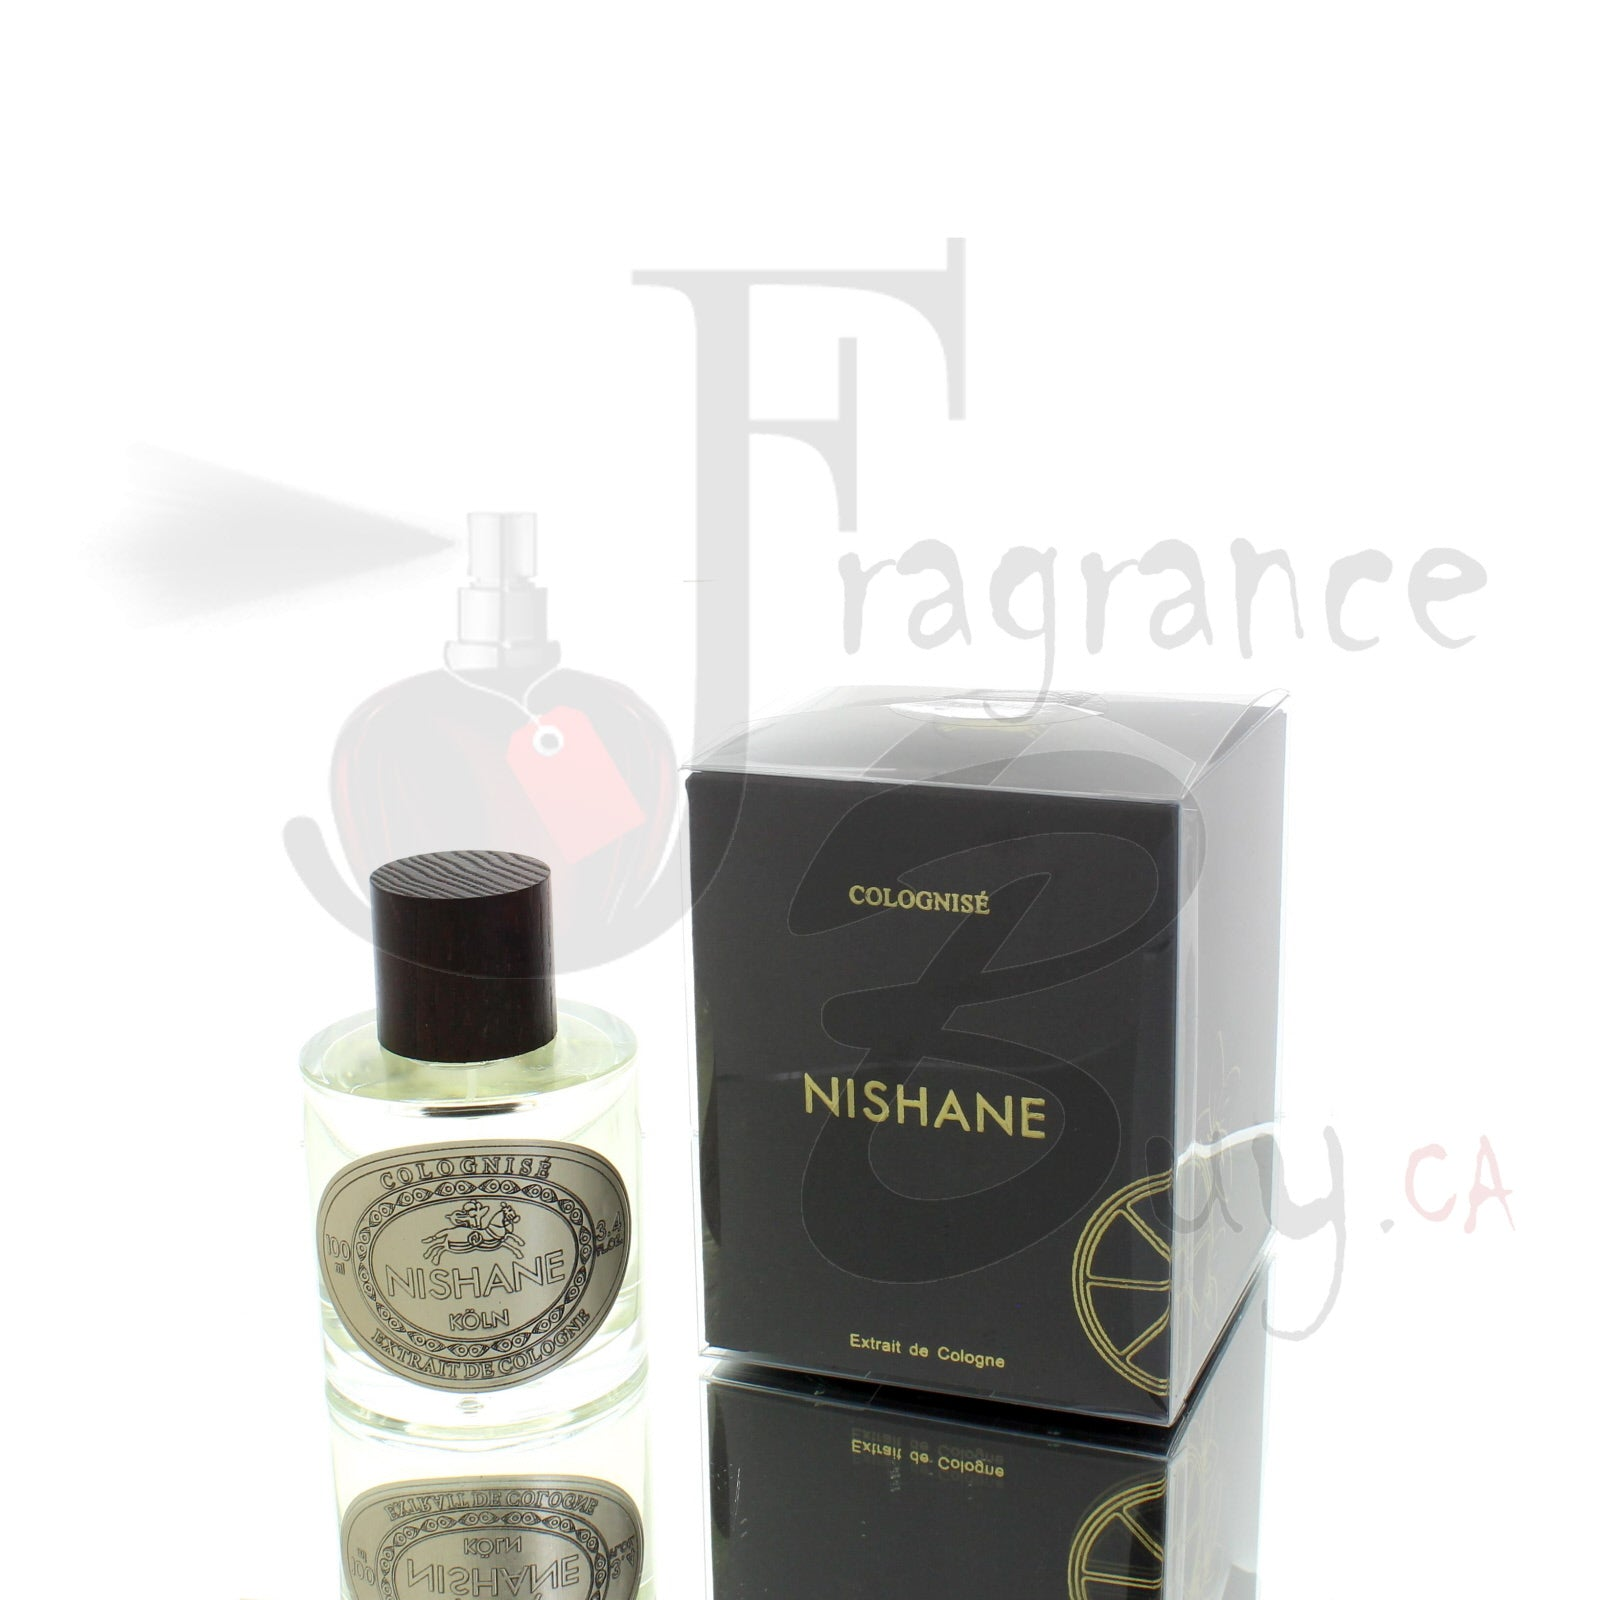 Nishane Colognise For Man/Woman